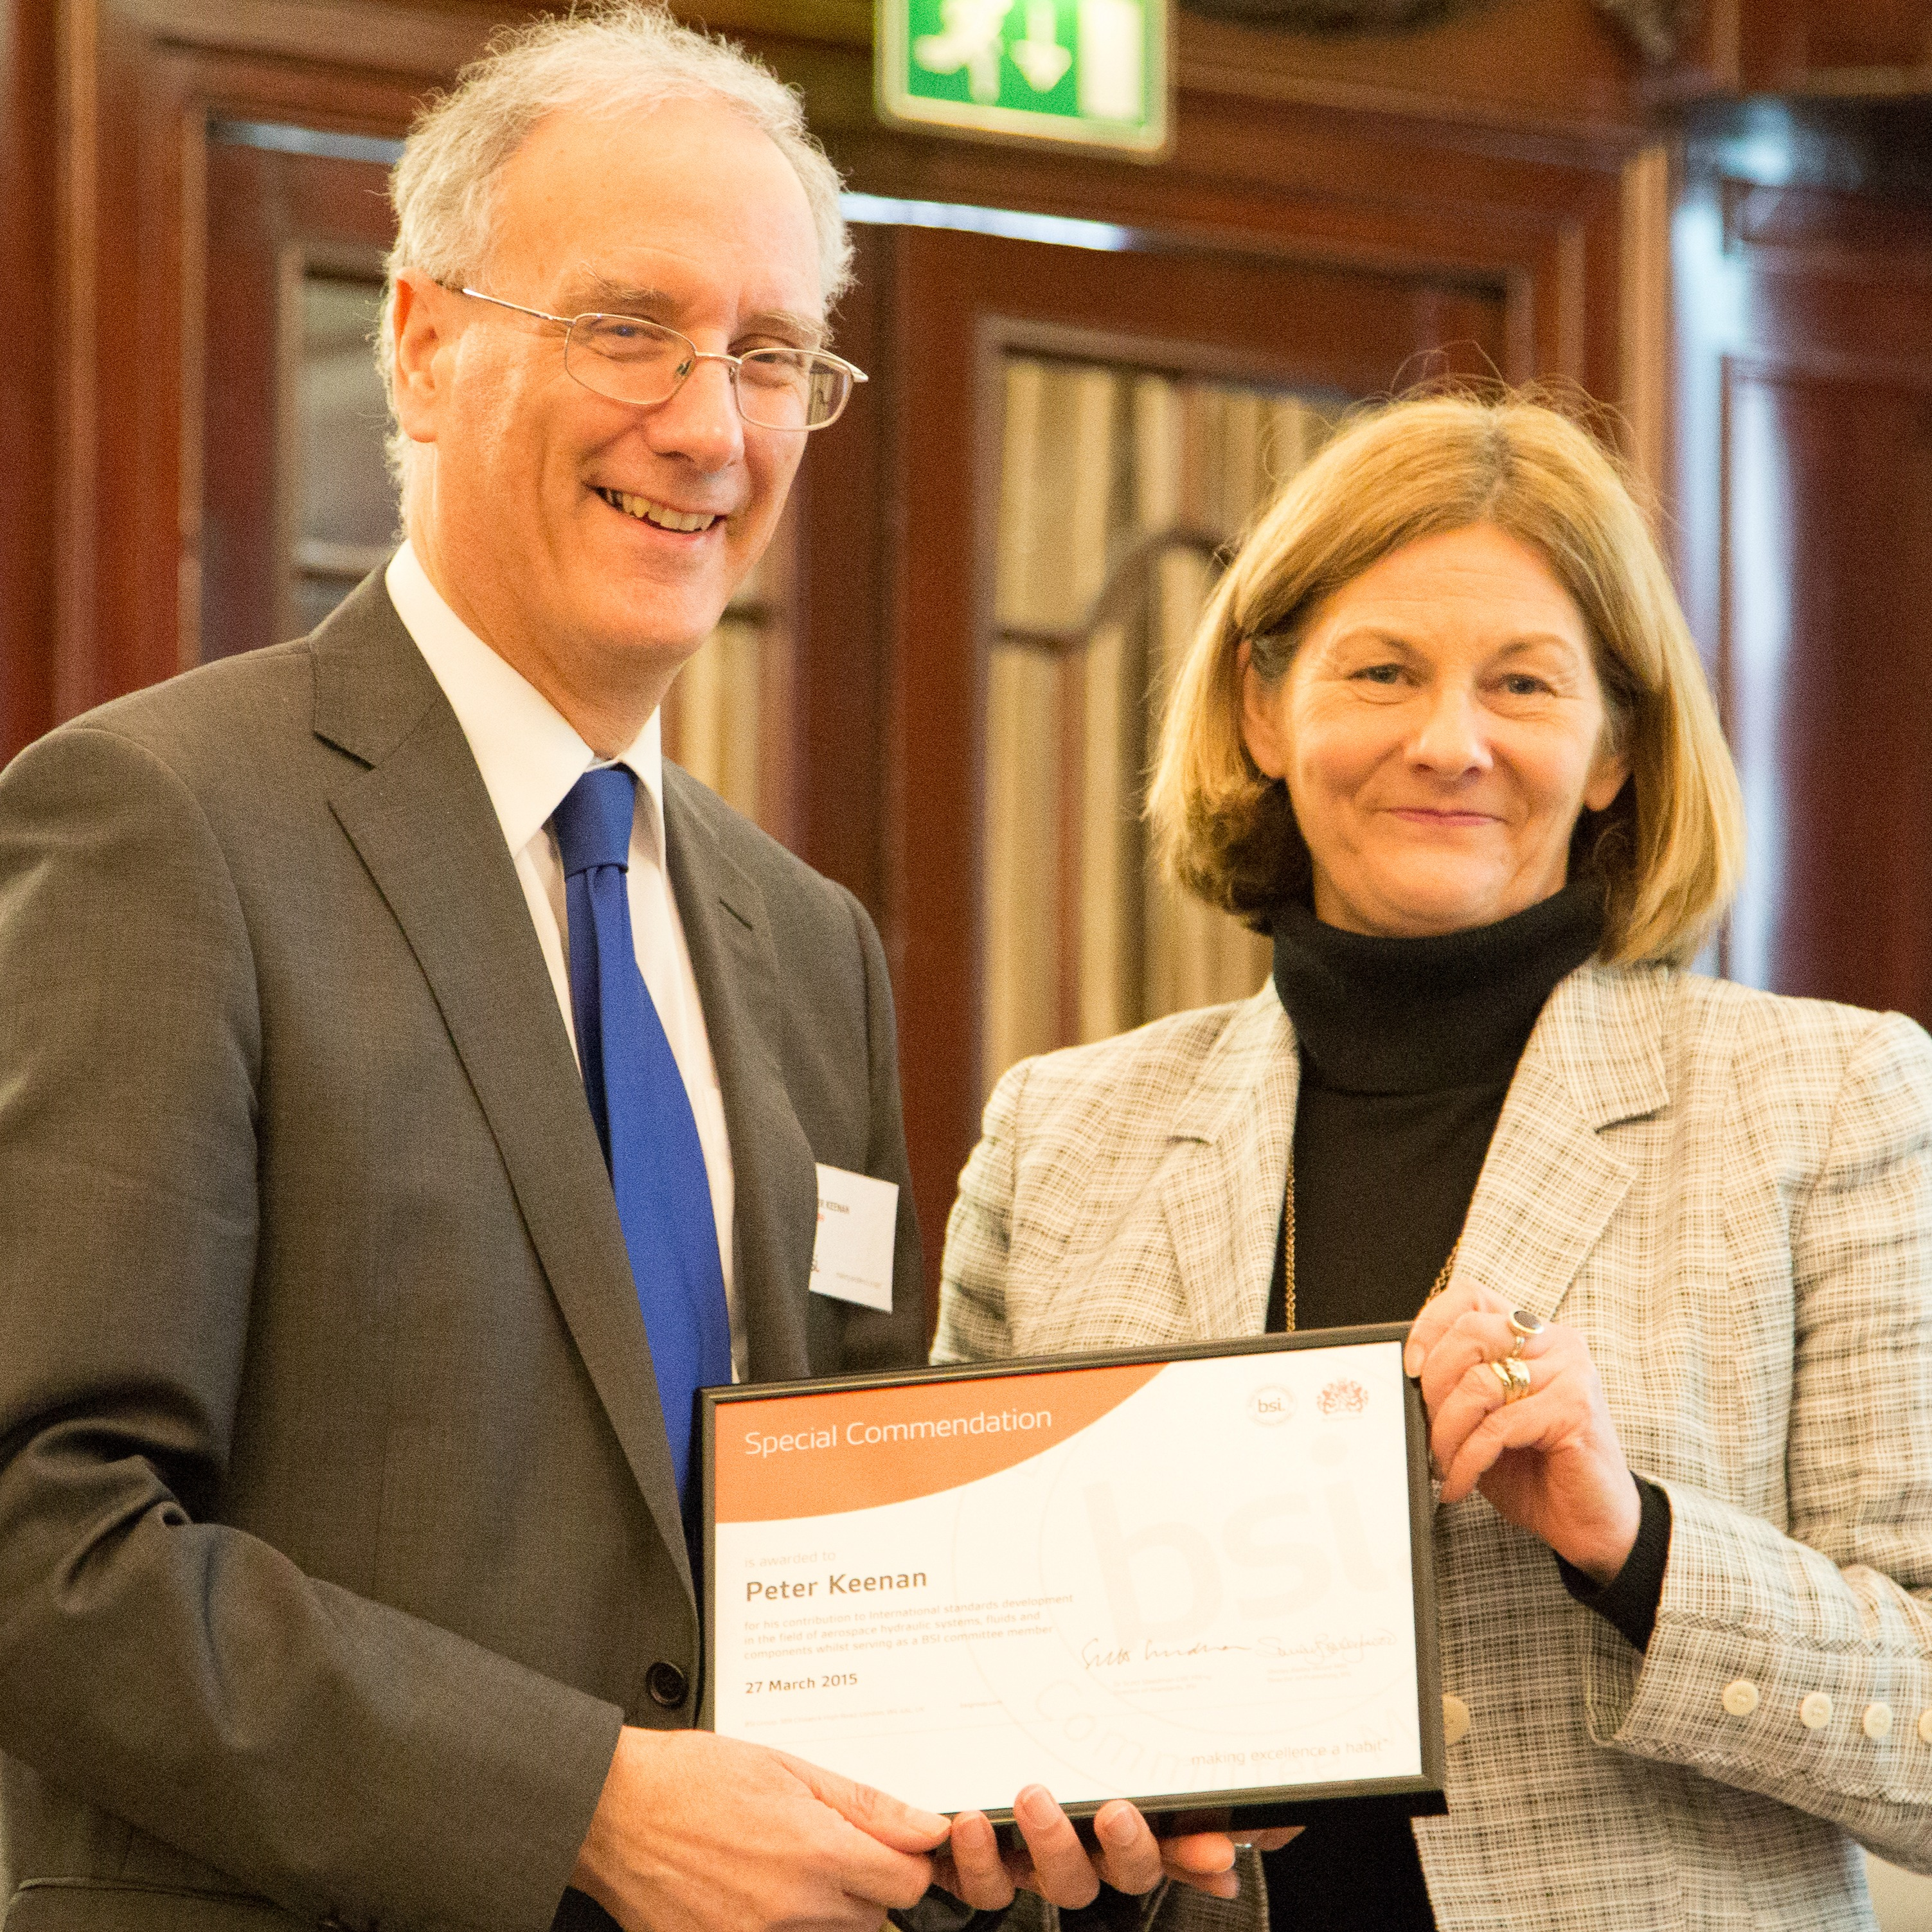 Peter Keenan (left) receives his award from Shirley Bailey-Woods, BSI